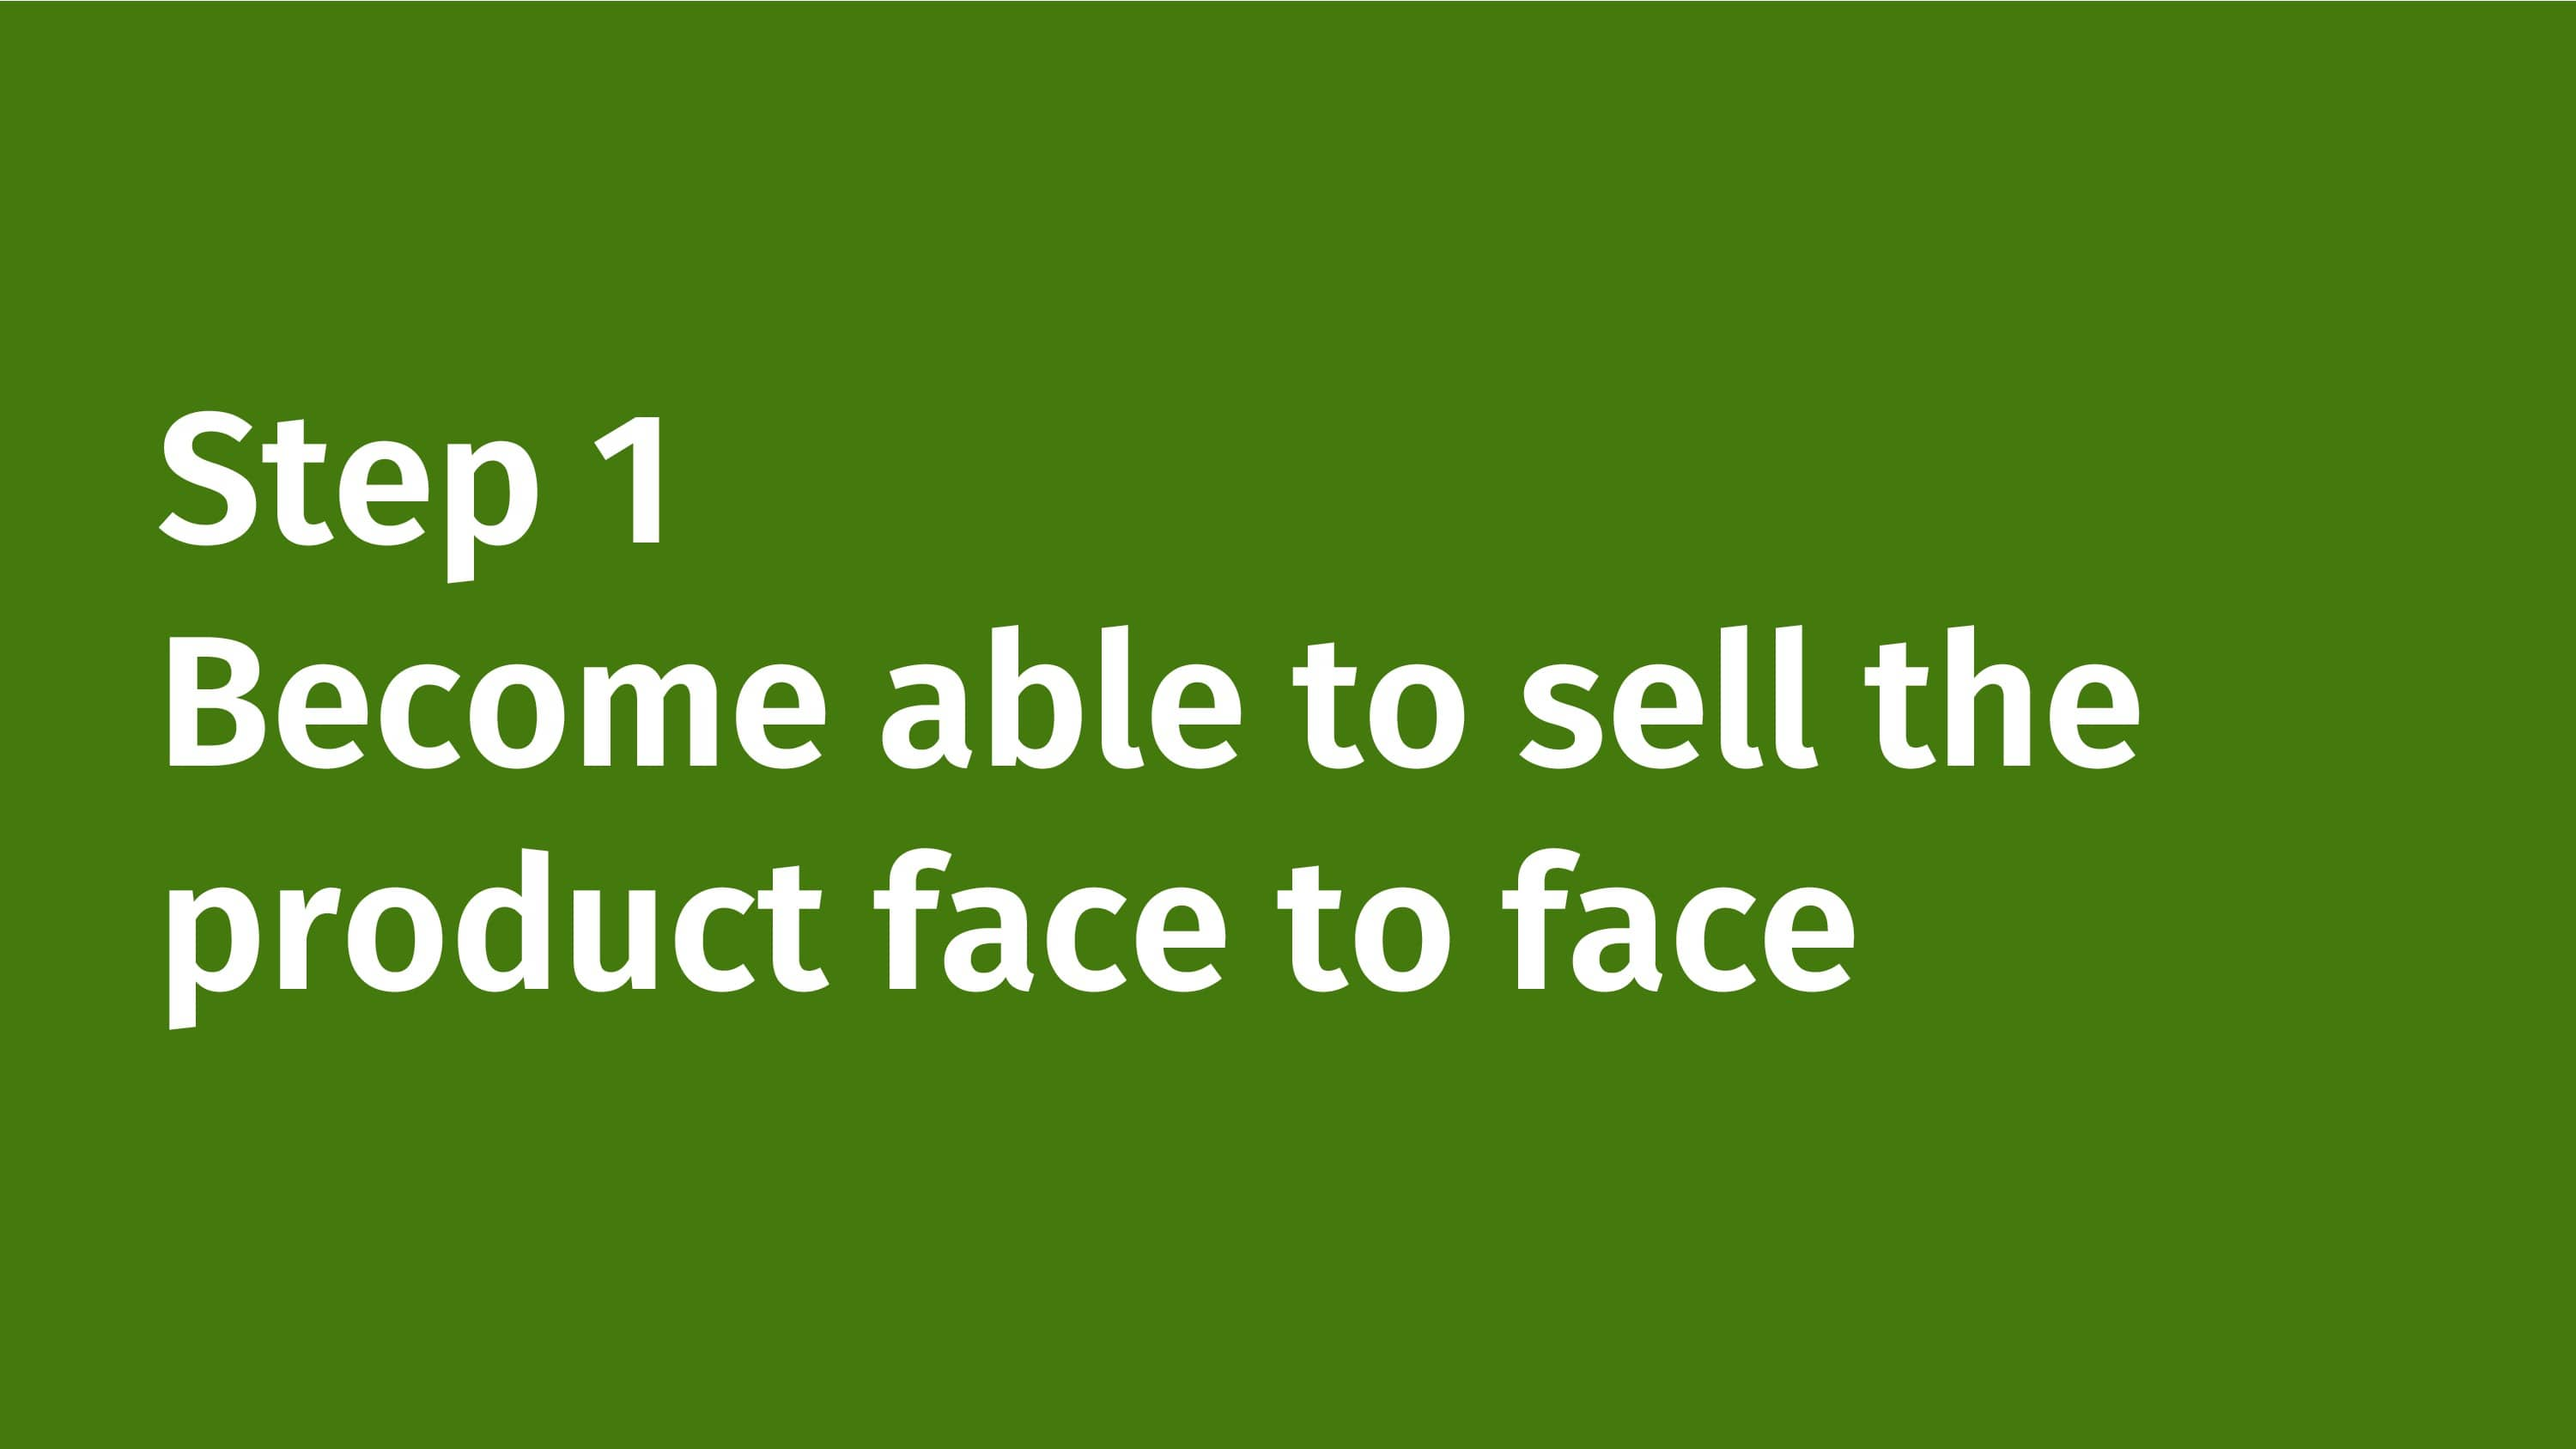 Step 1: Become able to sell the product face to face.